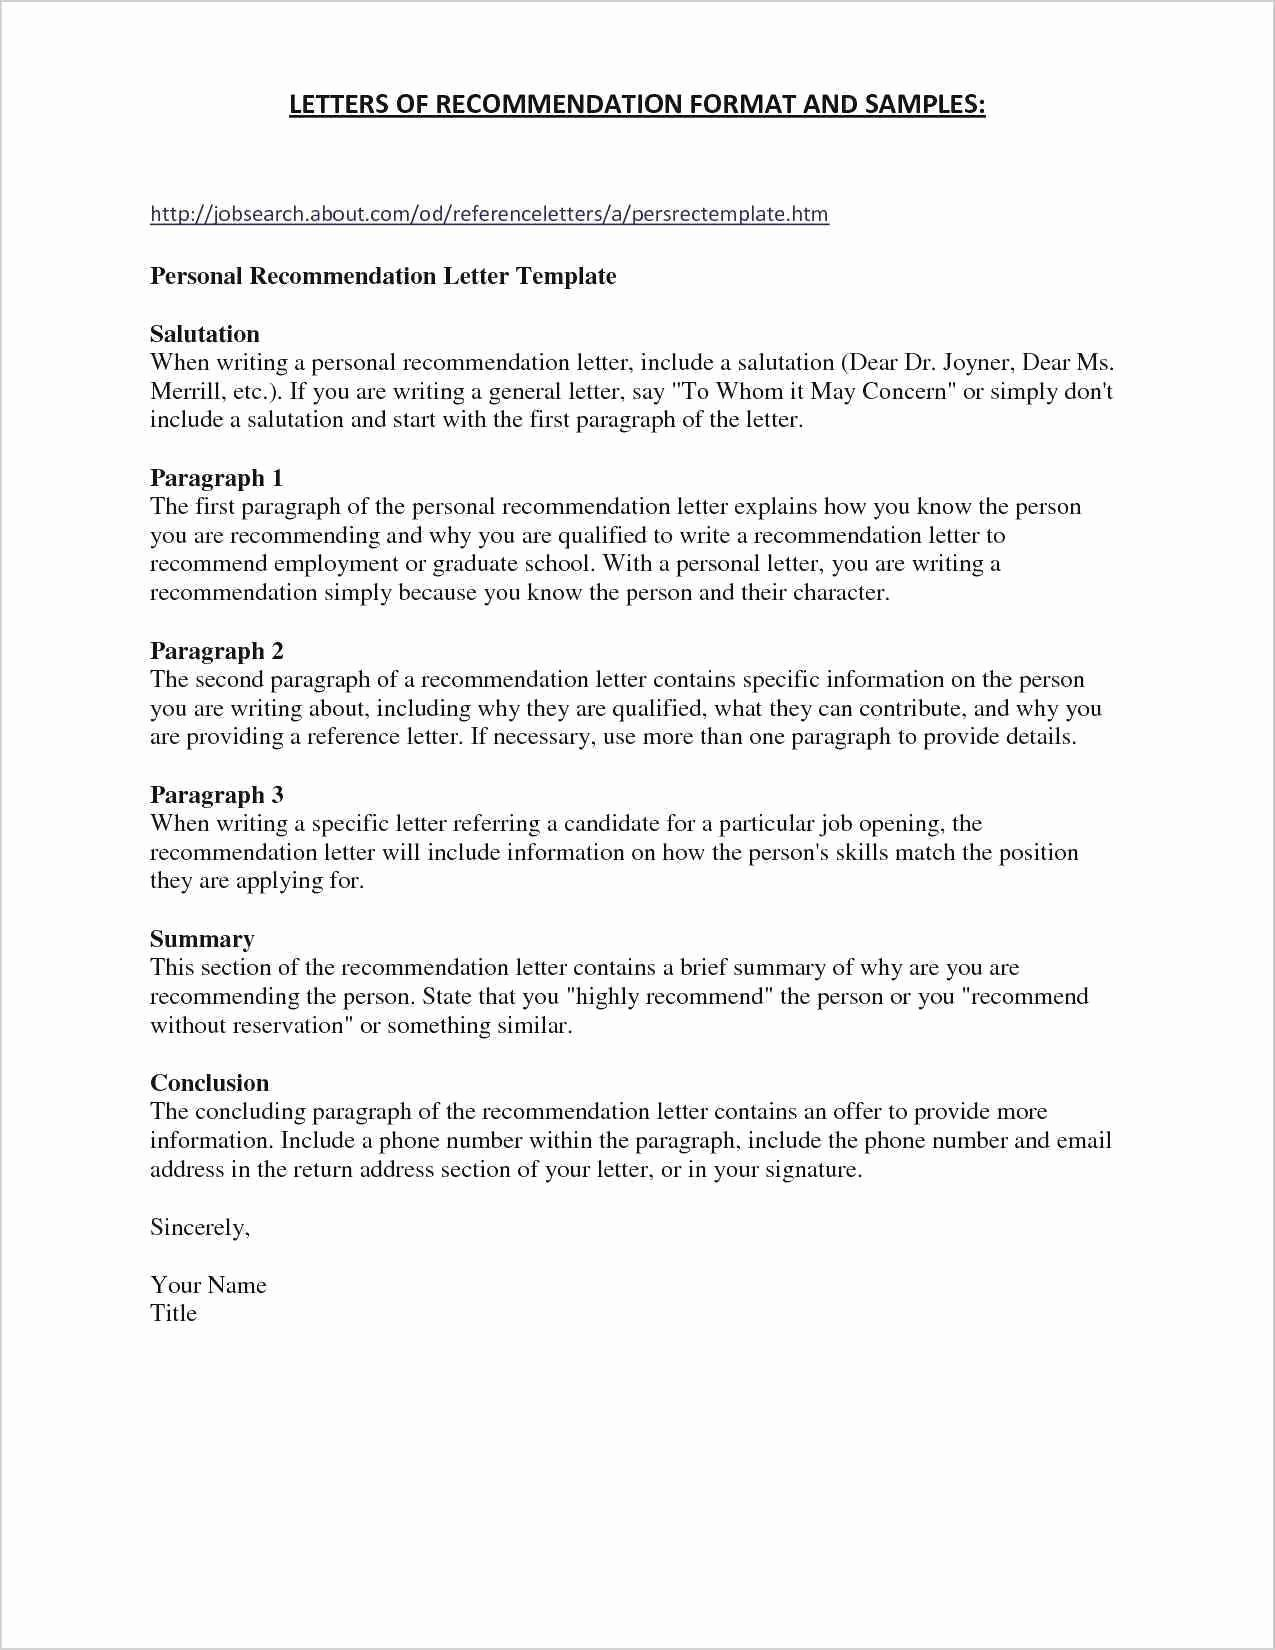 Lockheed Martin Address for Cover Letter Luxury Lockheed Martin Resume format